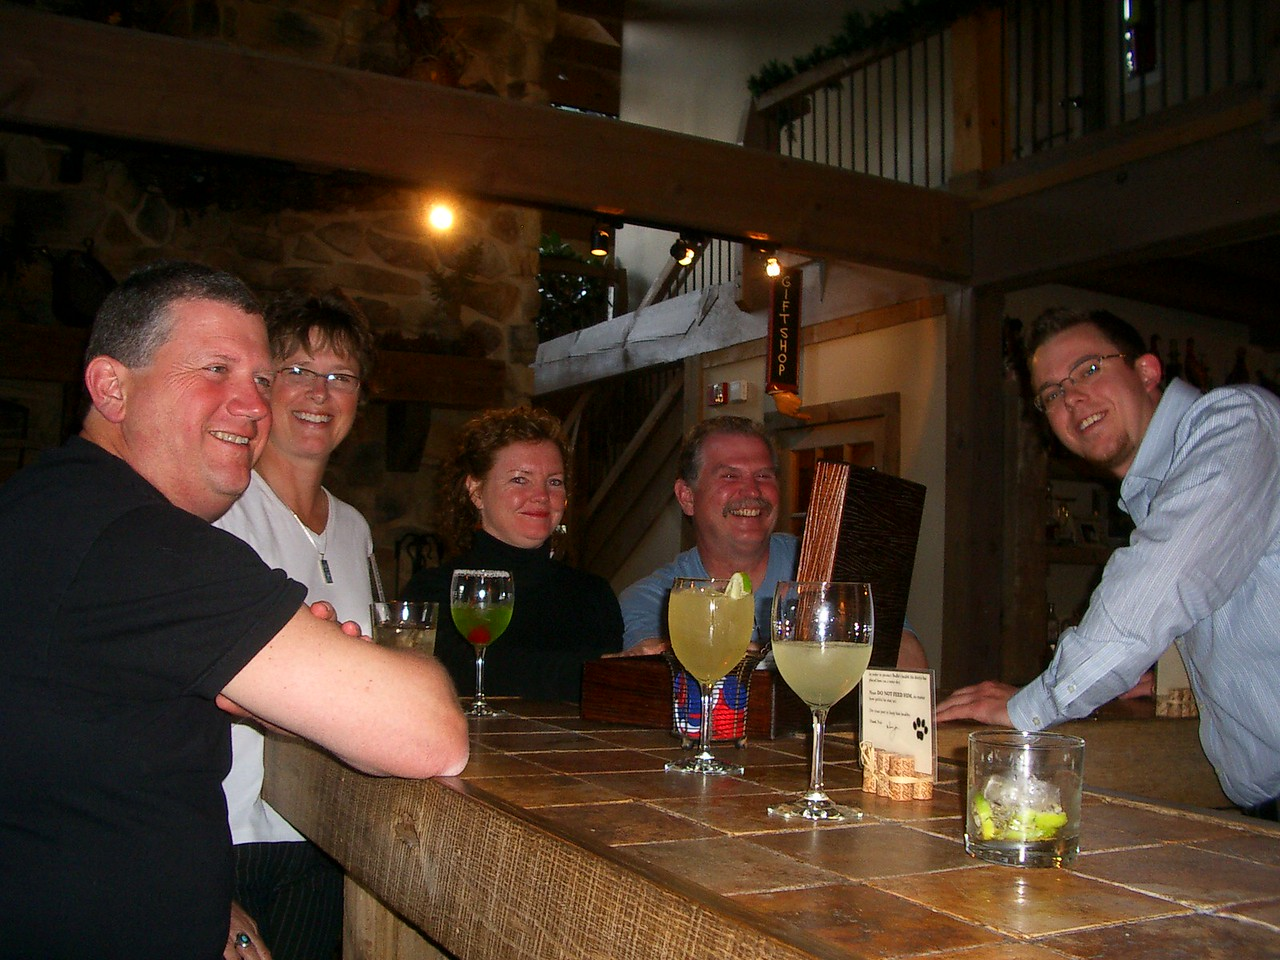 The start of too many Margaritas, aided by bartender (and ex-roadracer) Lee.